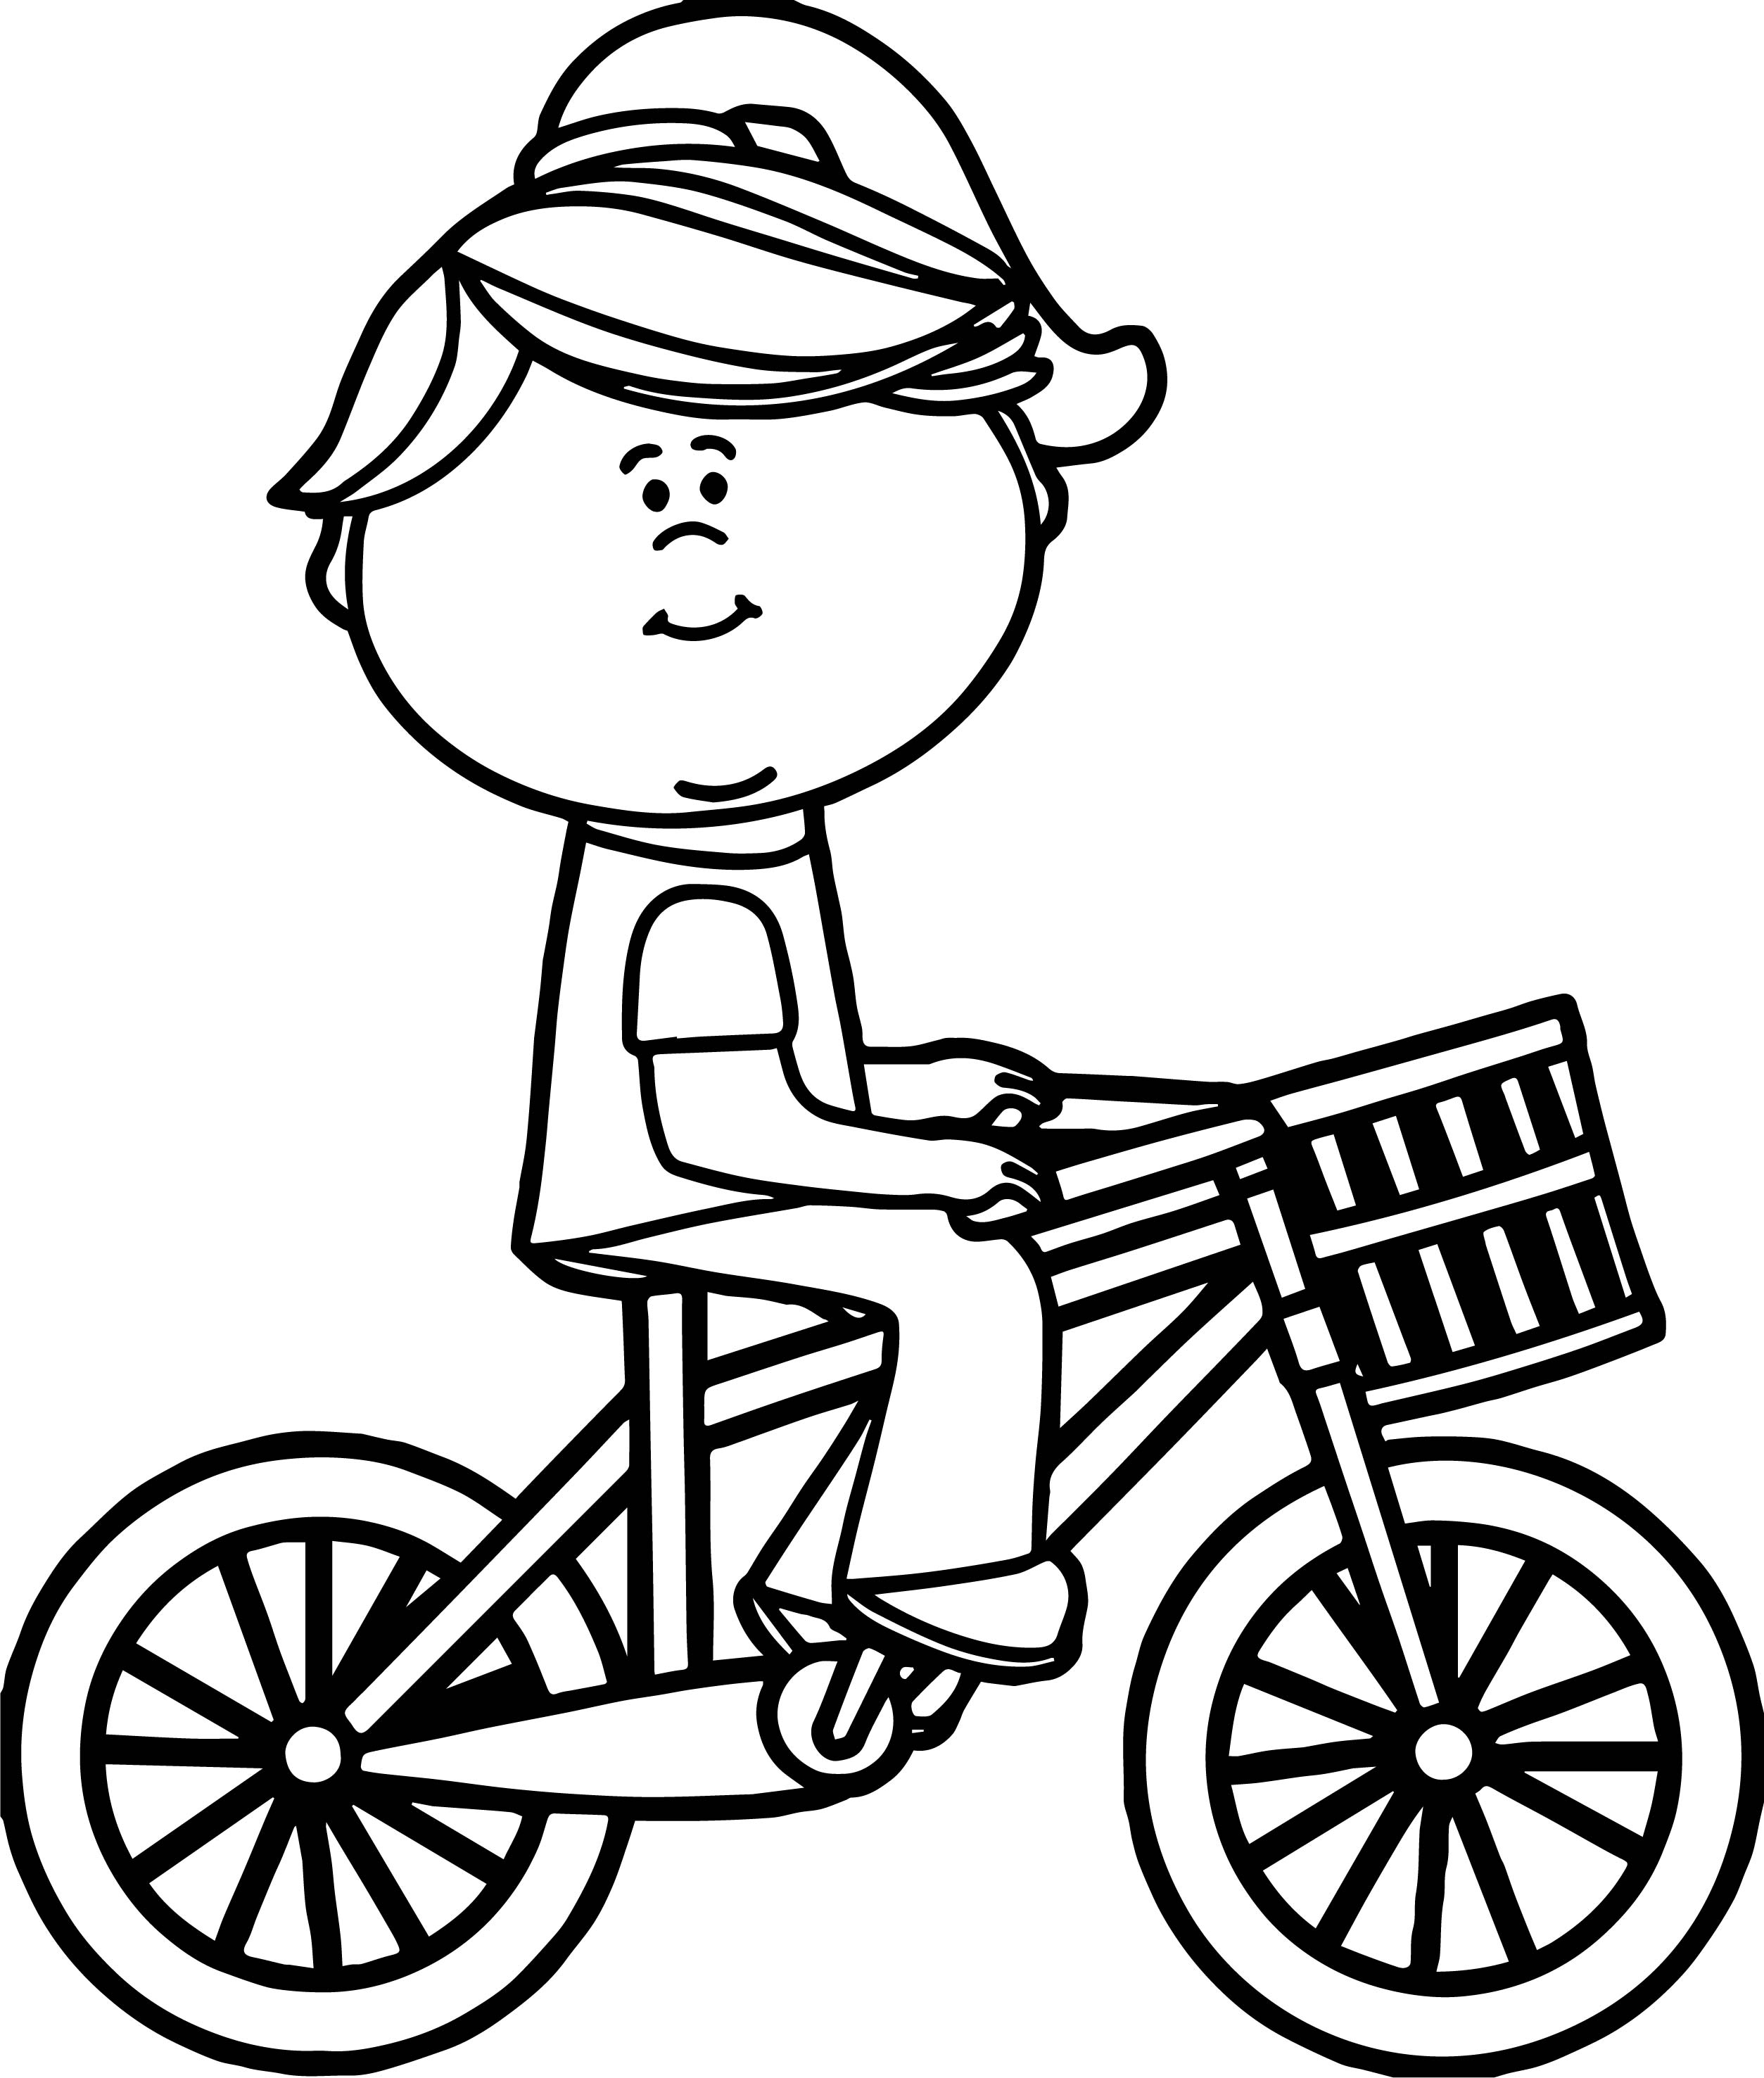 2507x2953 Bicycle Coloring Pages And Bike Itgod Of In Bikes Fancy